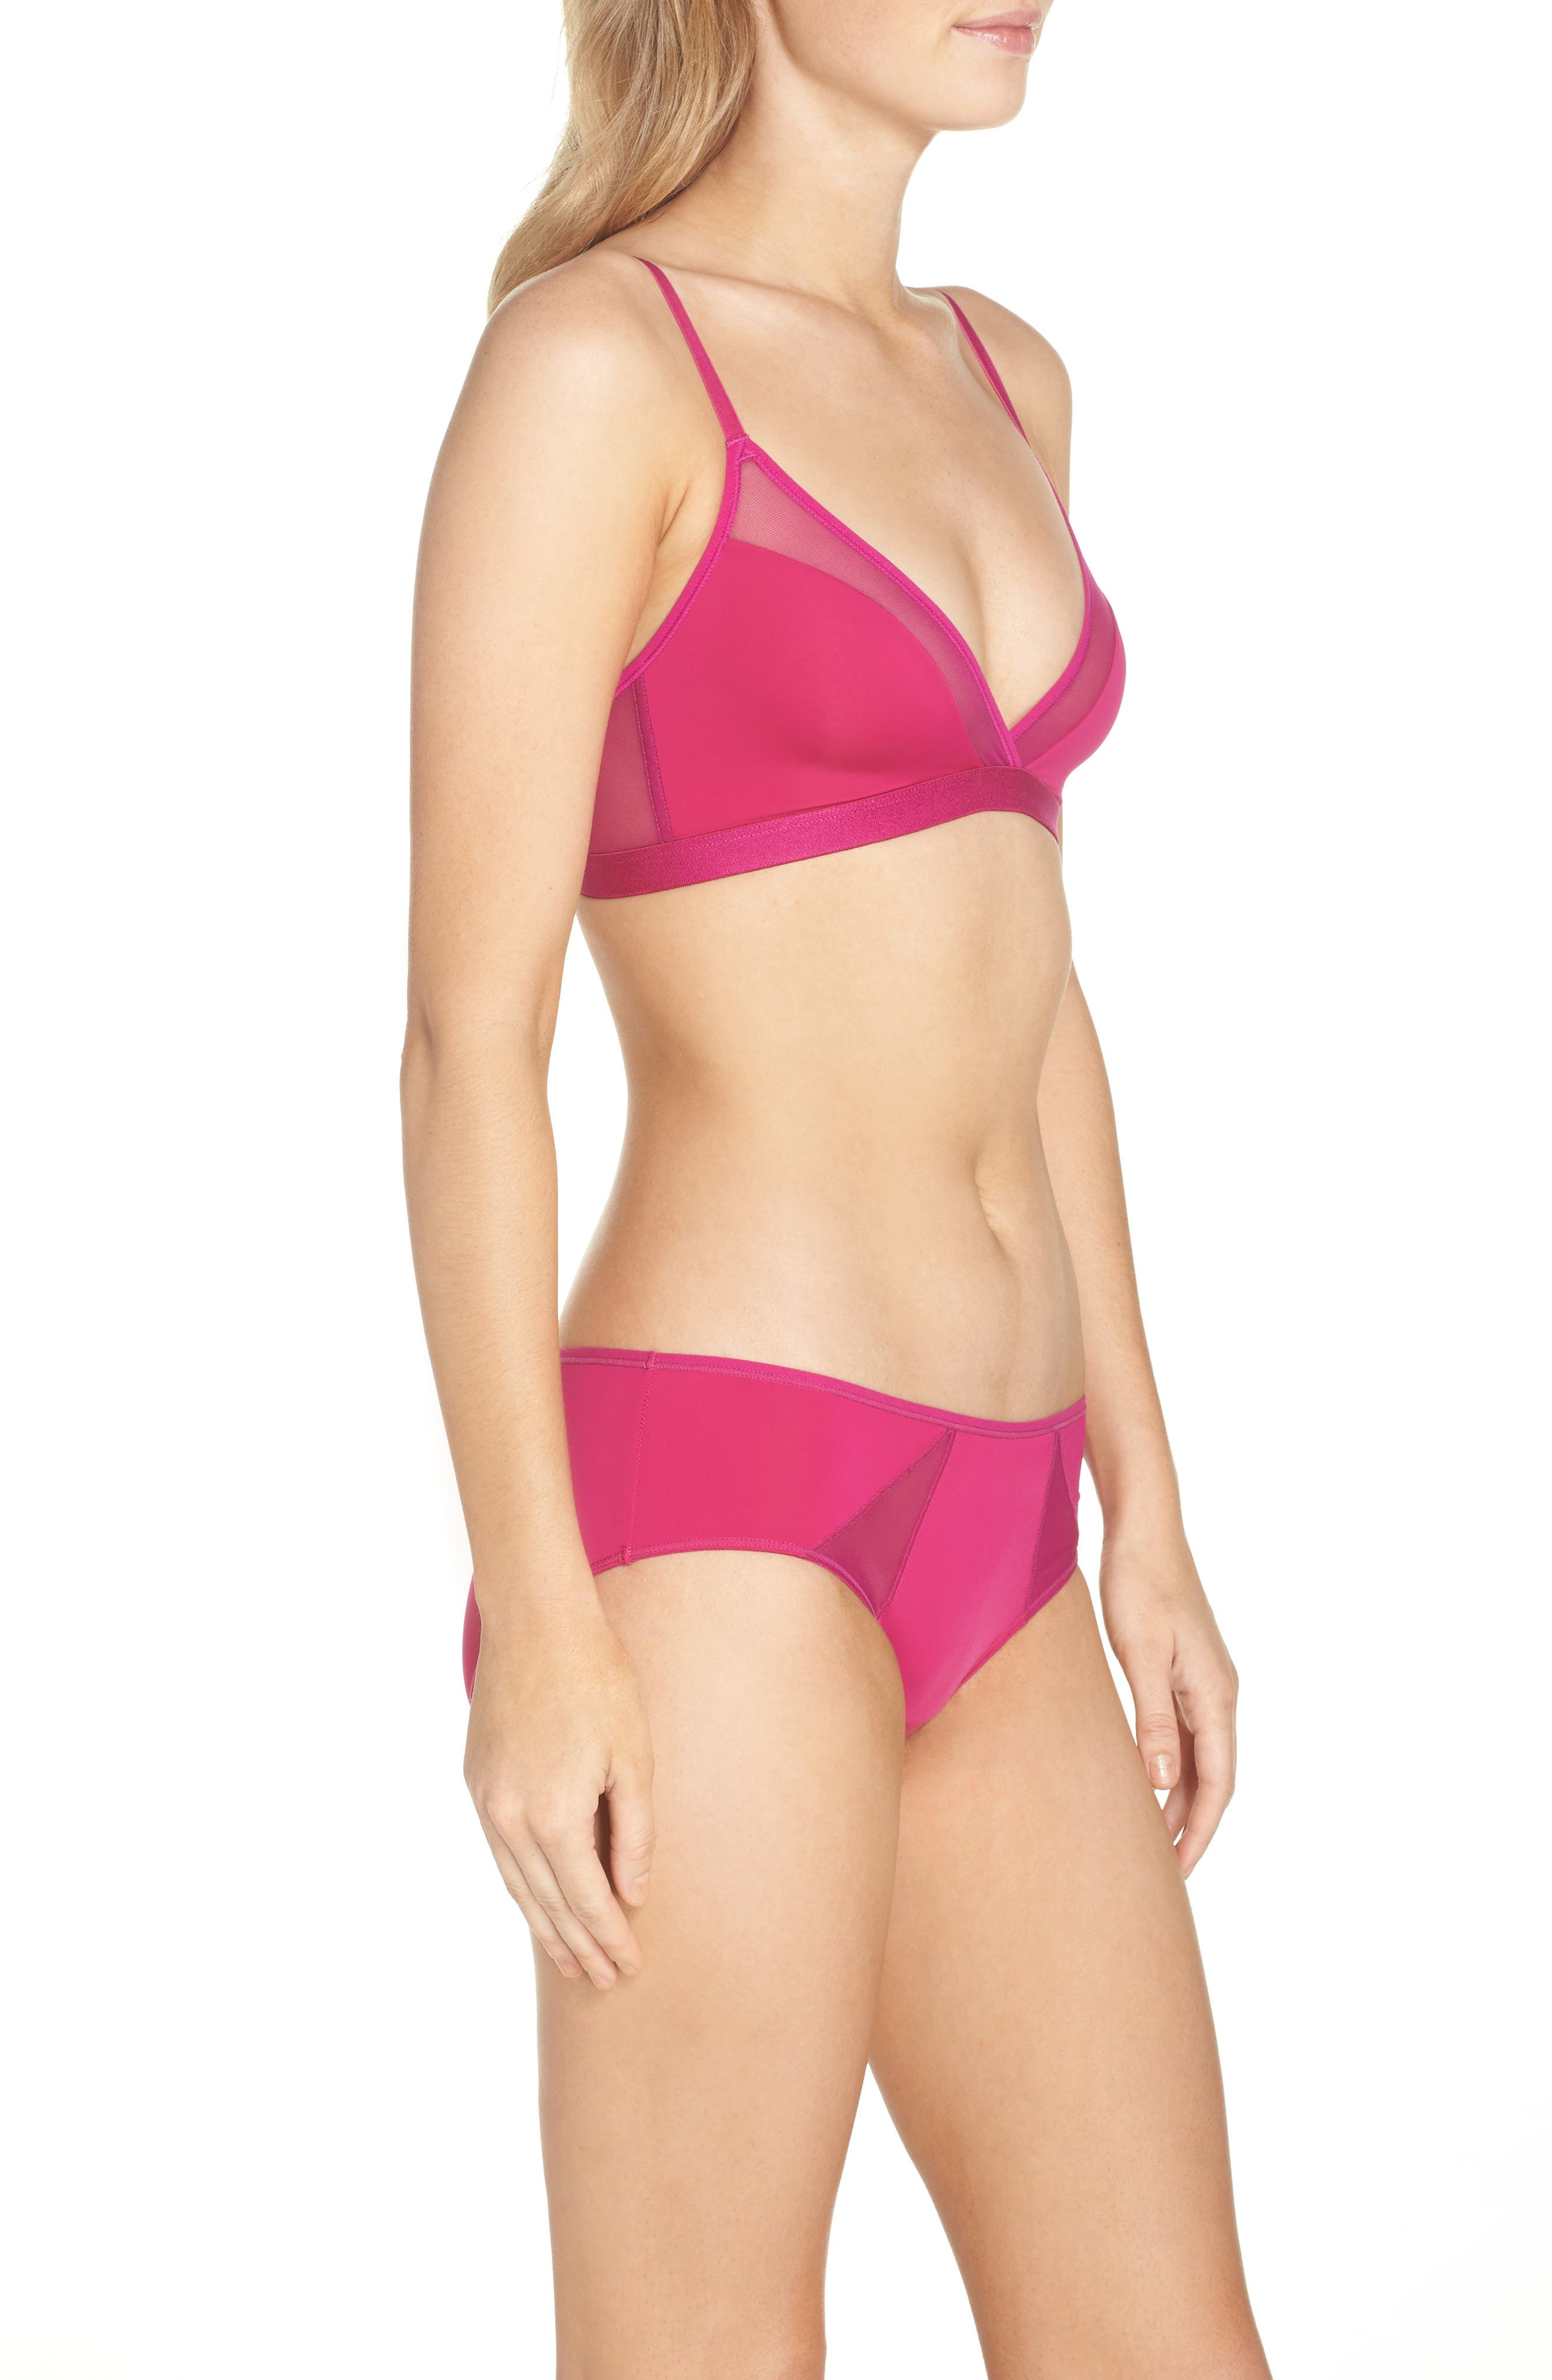 Highlight Wireless Bra,                             Alternate thumbnail 6, color,                             Wild Orchid